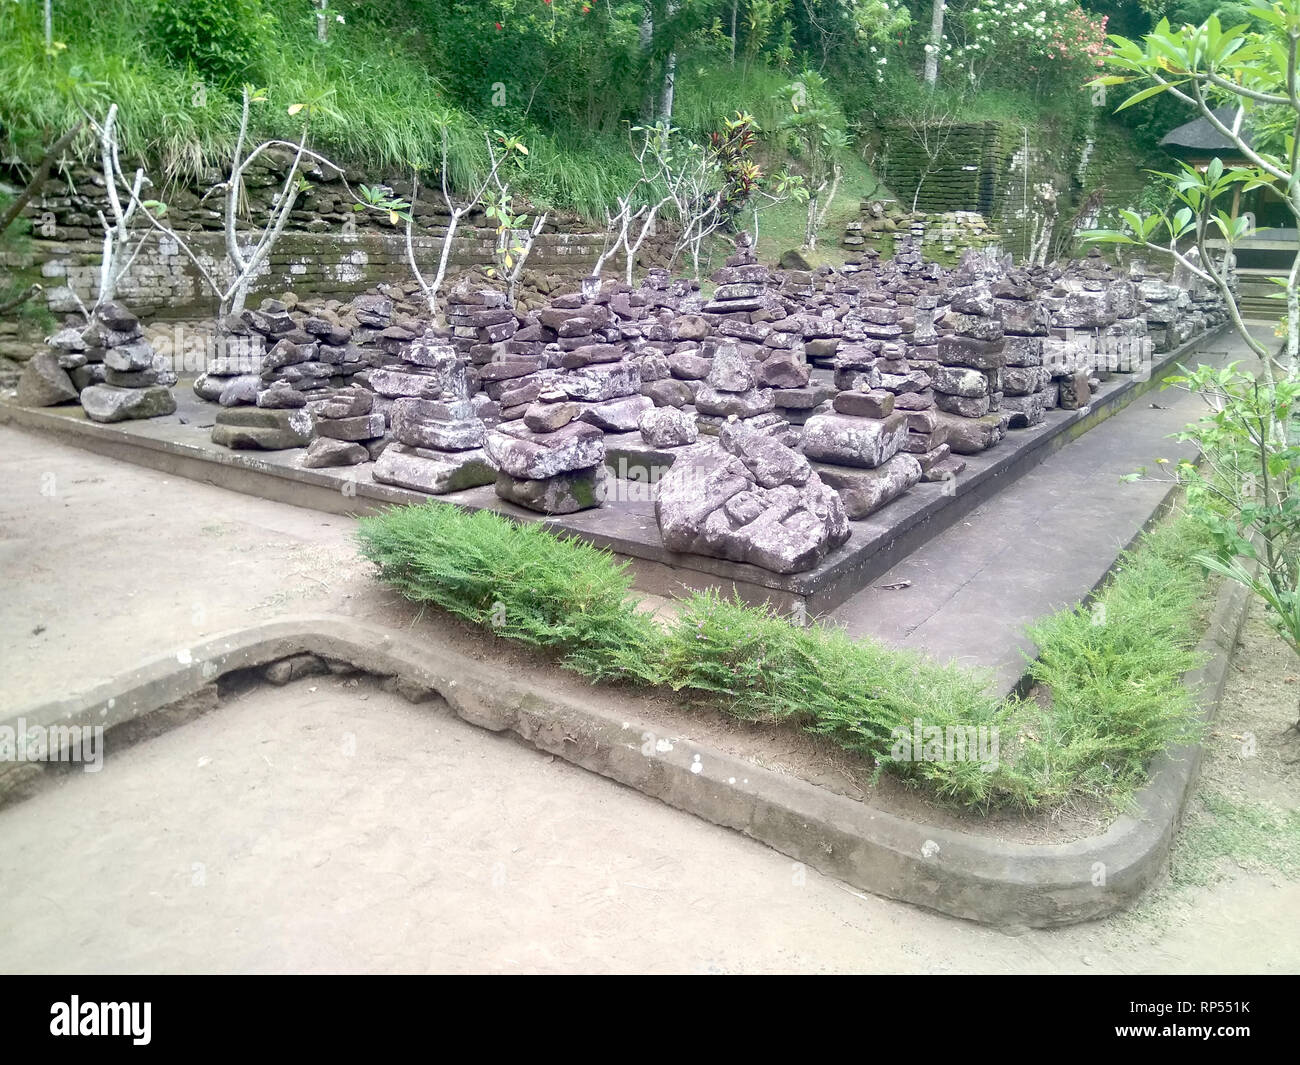 Ubud-Stones at Goa Gajah elephant cave - Stock Image